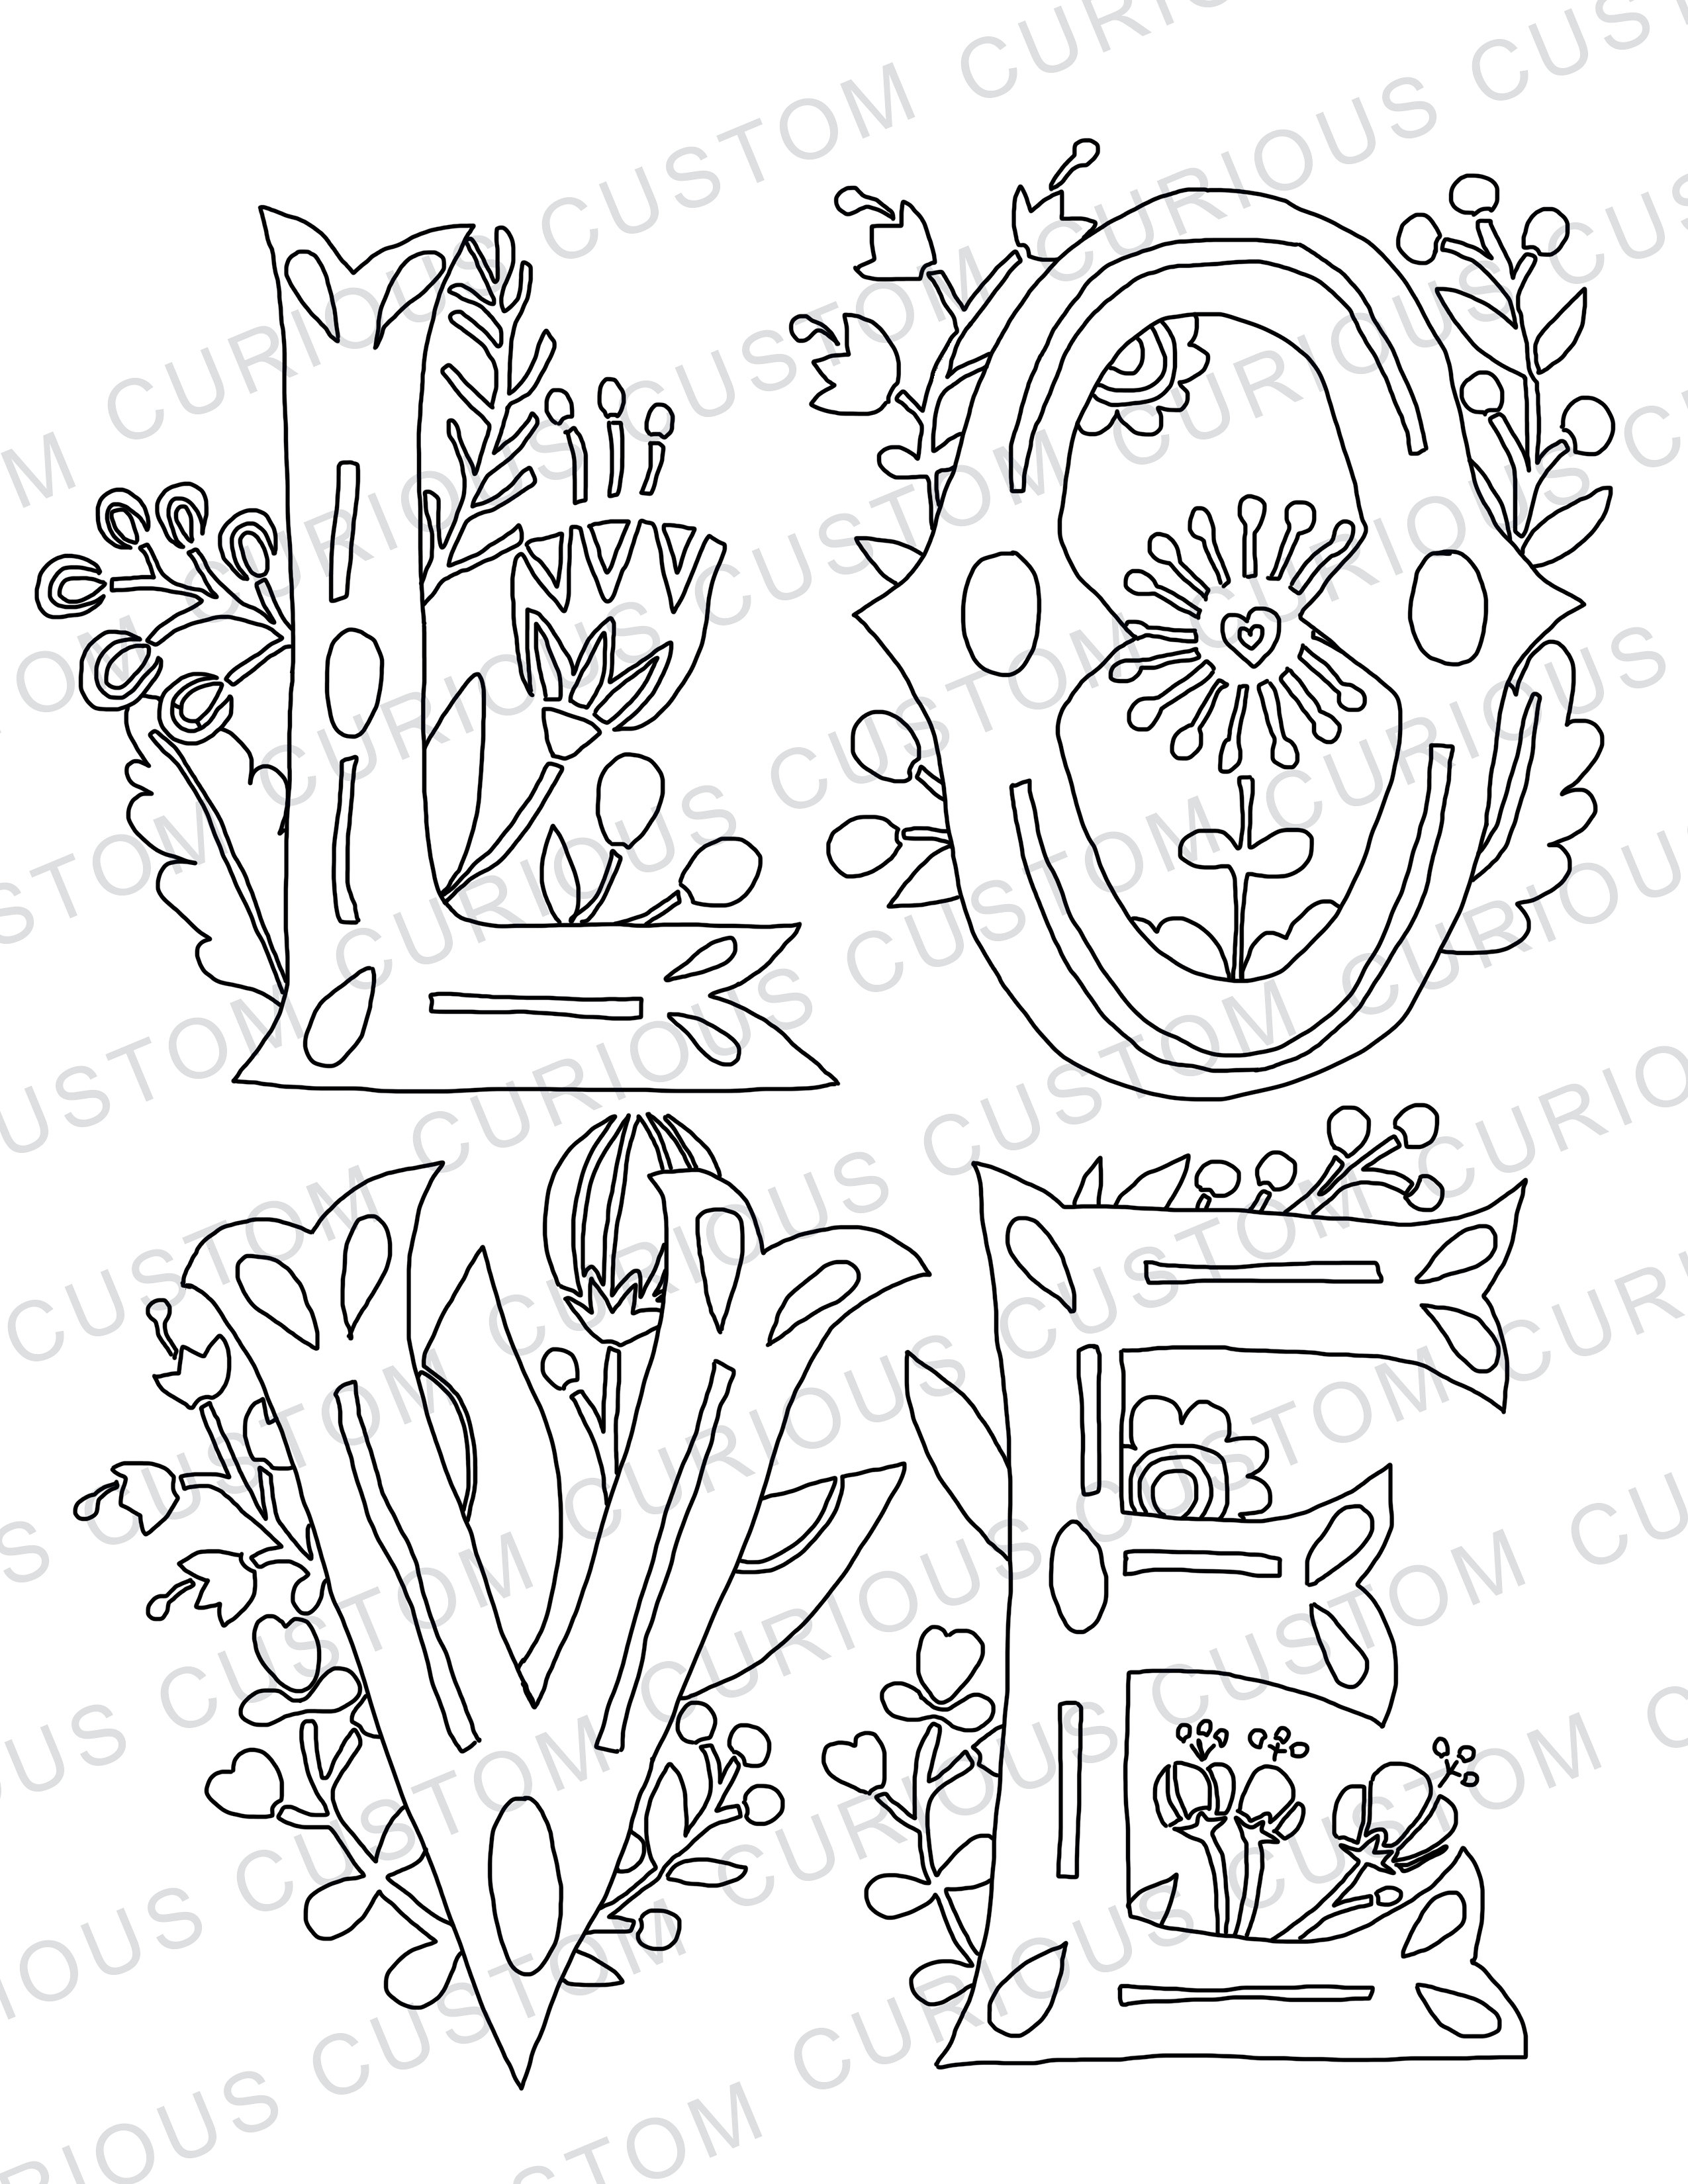 Personalized coloring books wedding coloring pages for Custom coloring pages